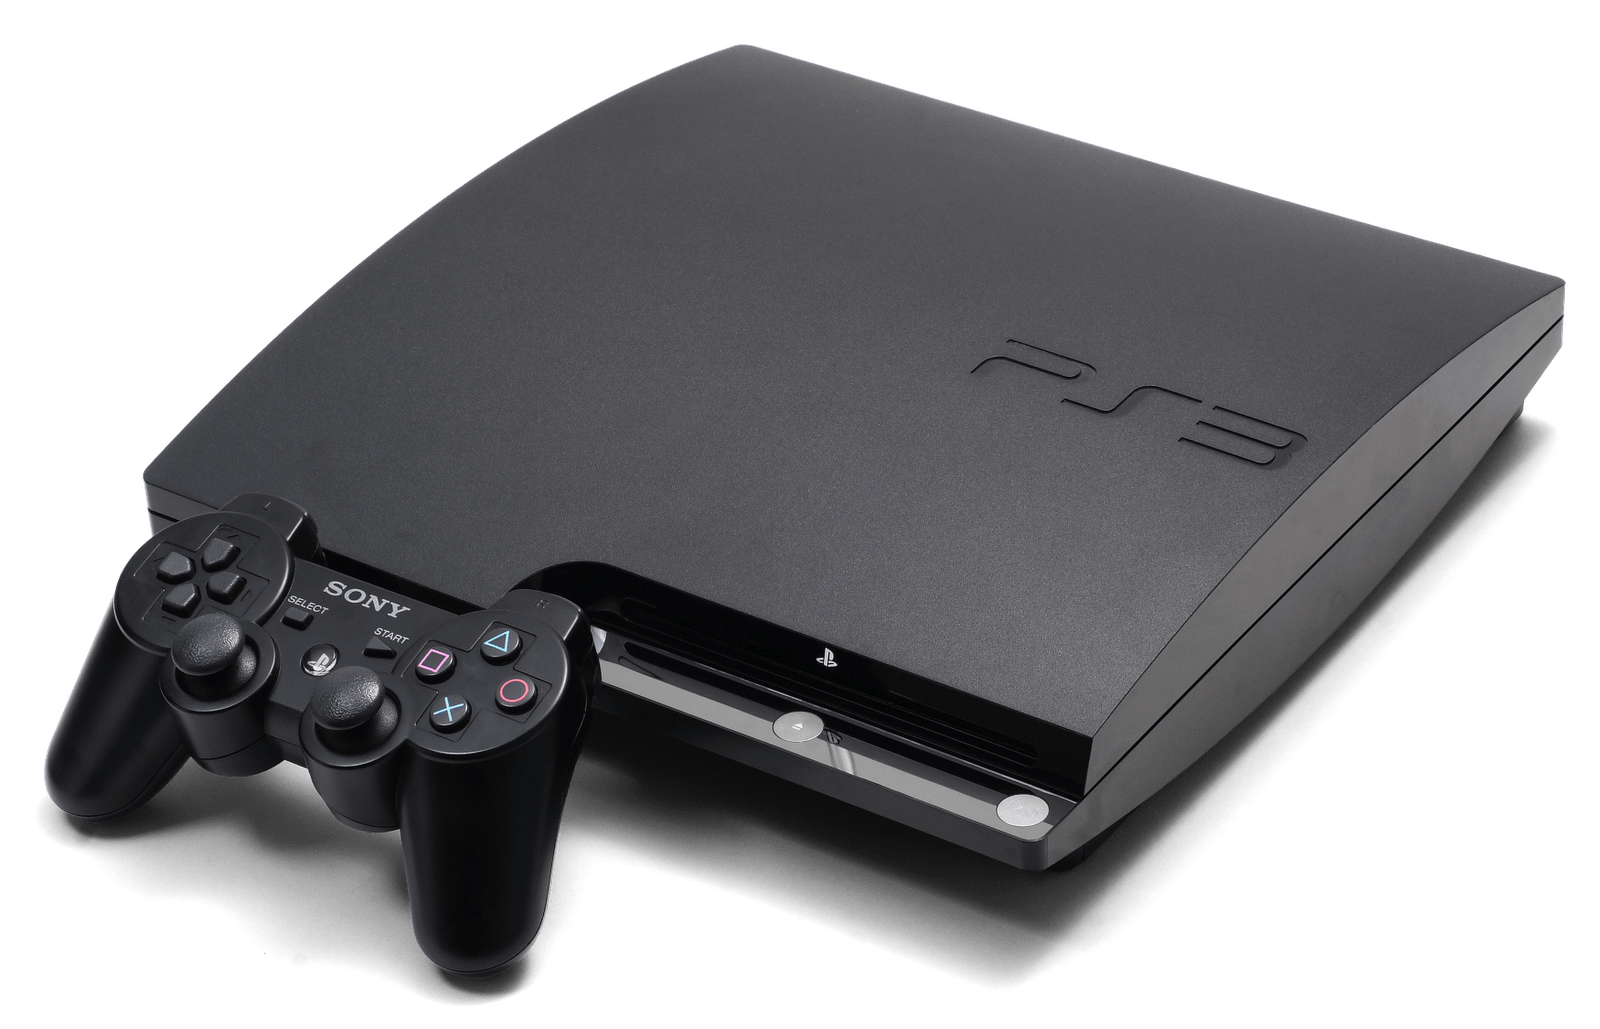 Sony has shipped its last ever PlayStation 3 in Japan